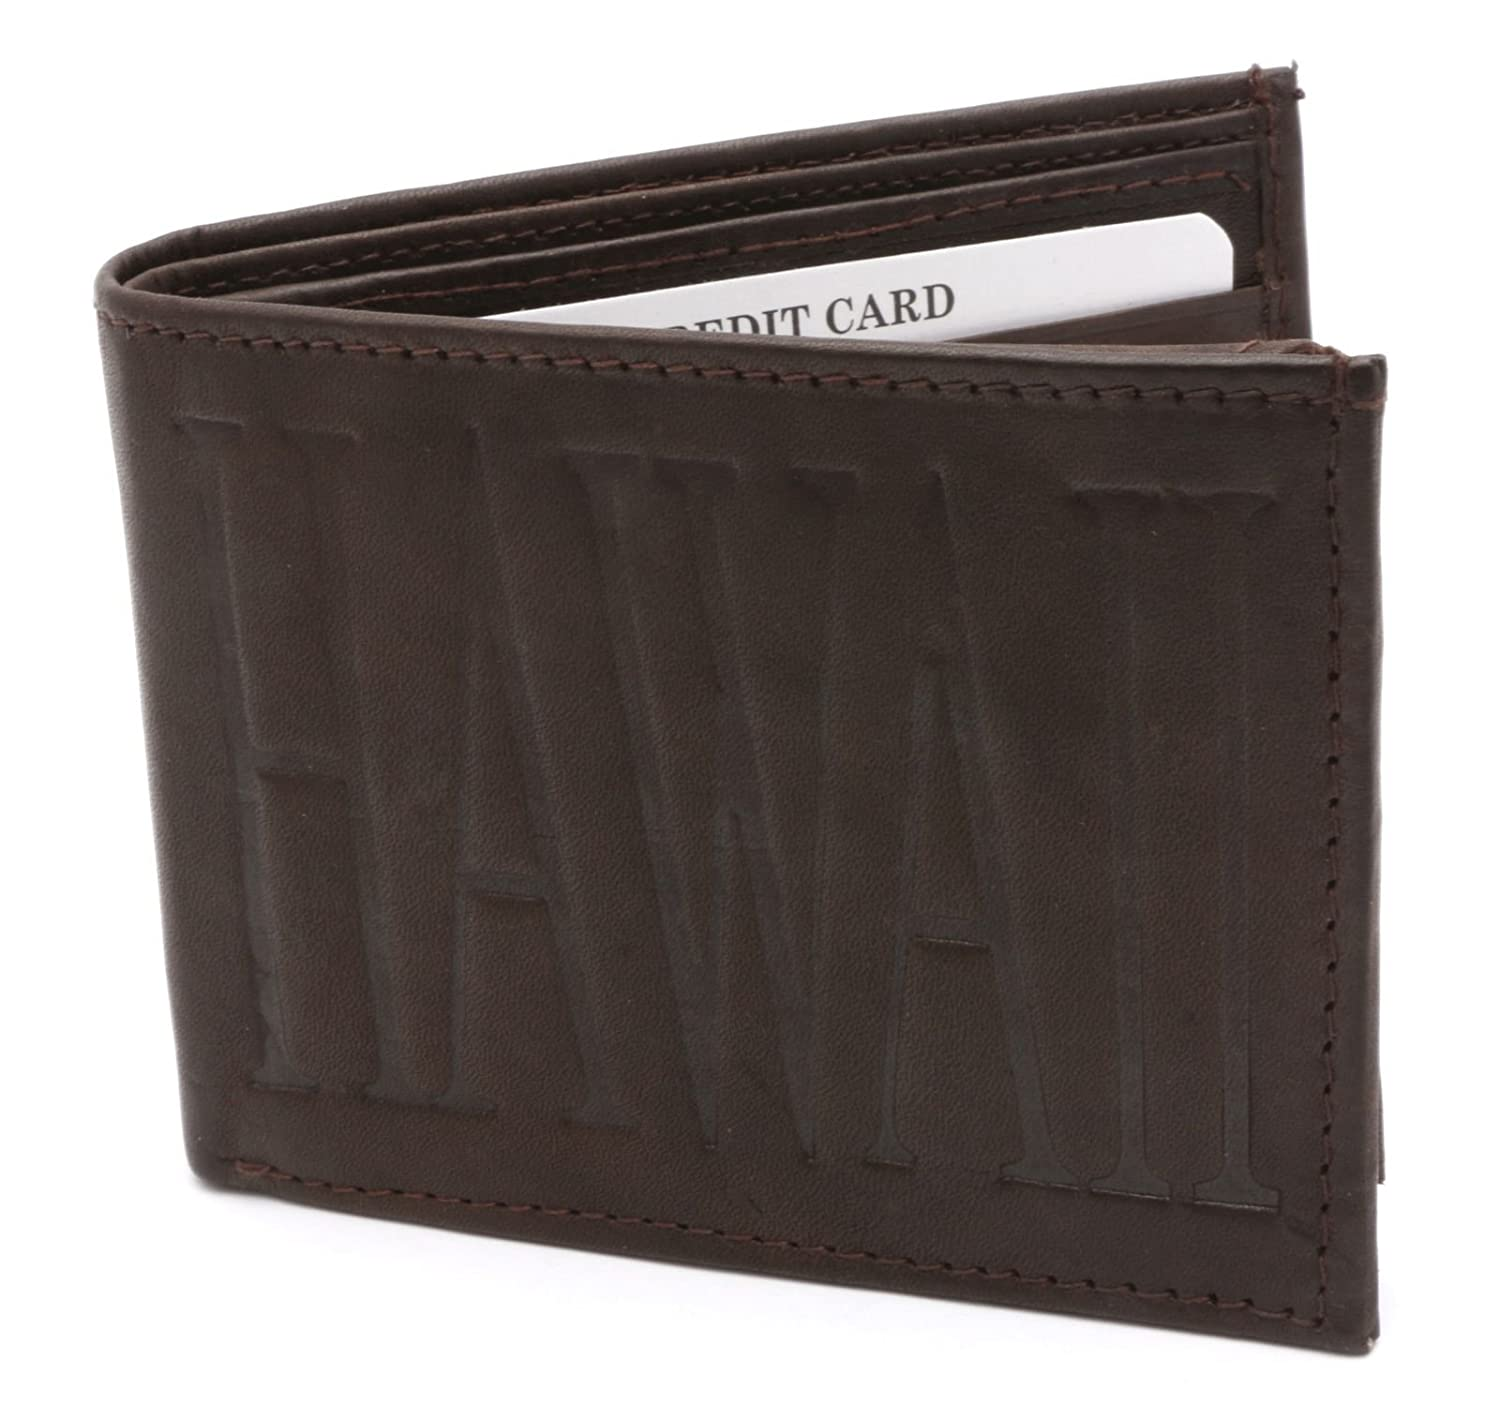 Bifold Genuine Leather Brown Compact Wallet with HAWAII Embossed Design